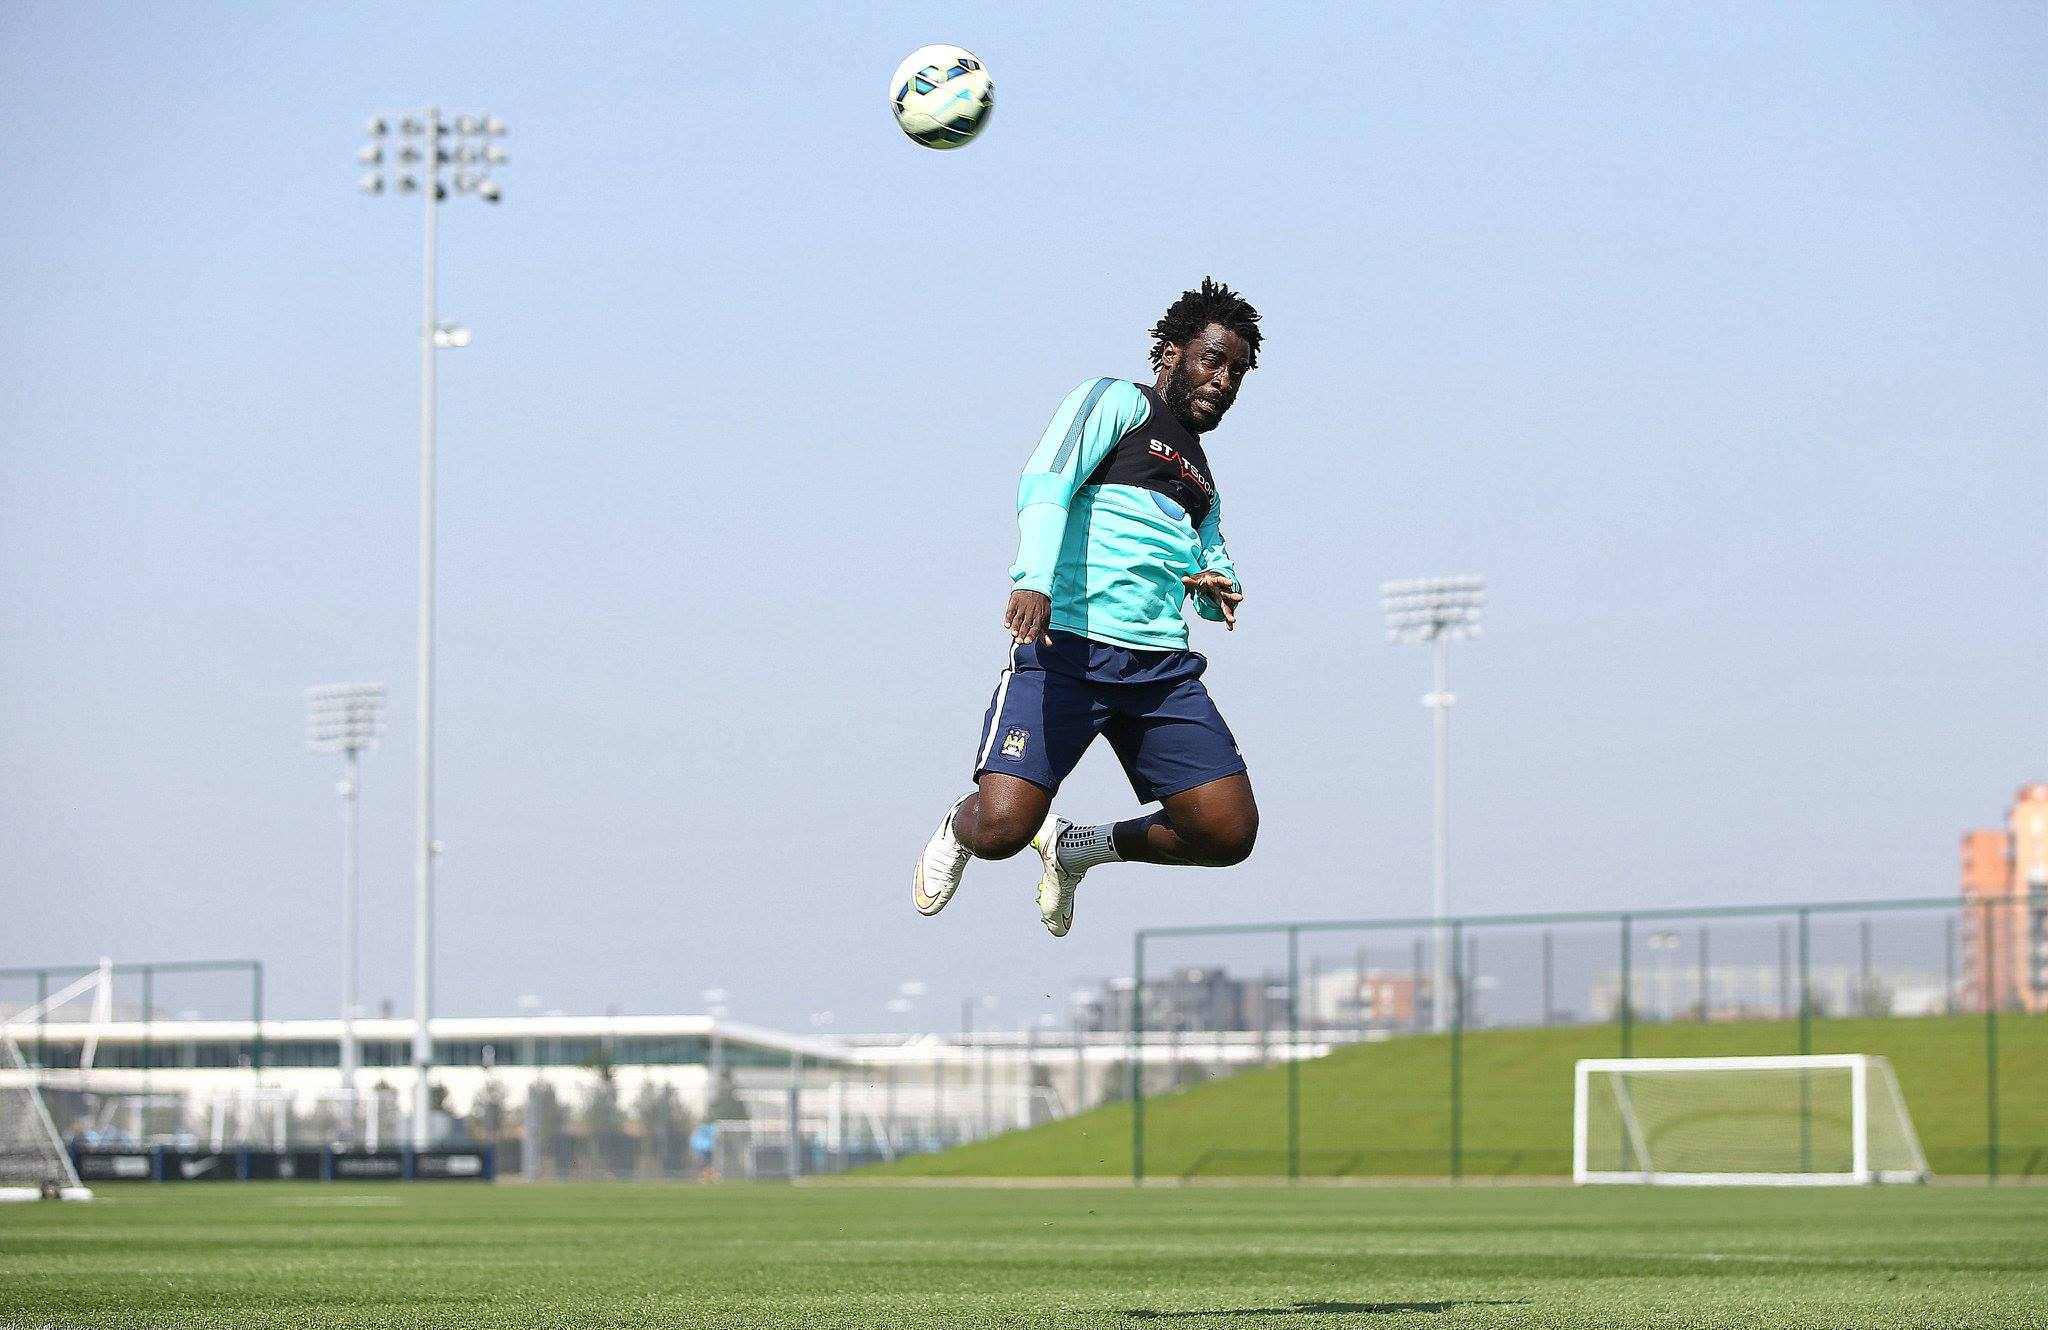 Too Early To Judge Wilfried Bony At Manchester City